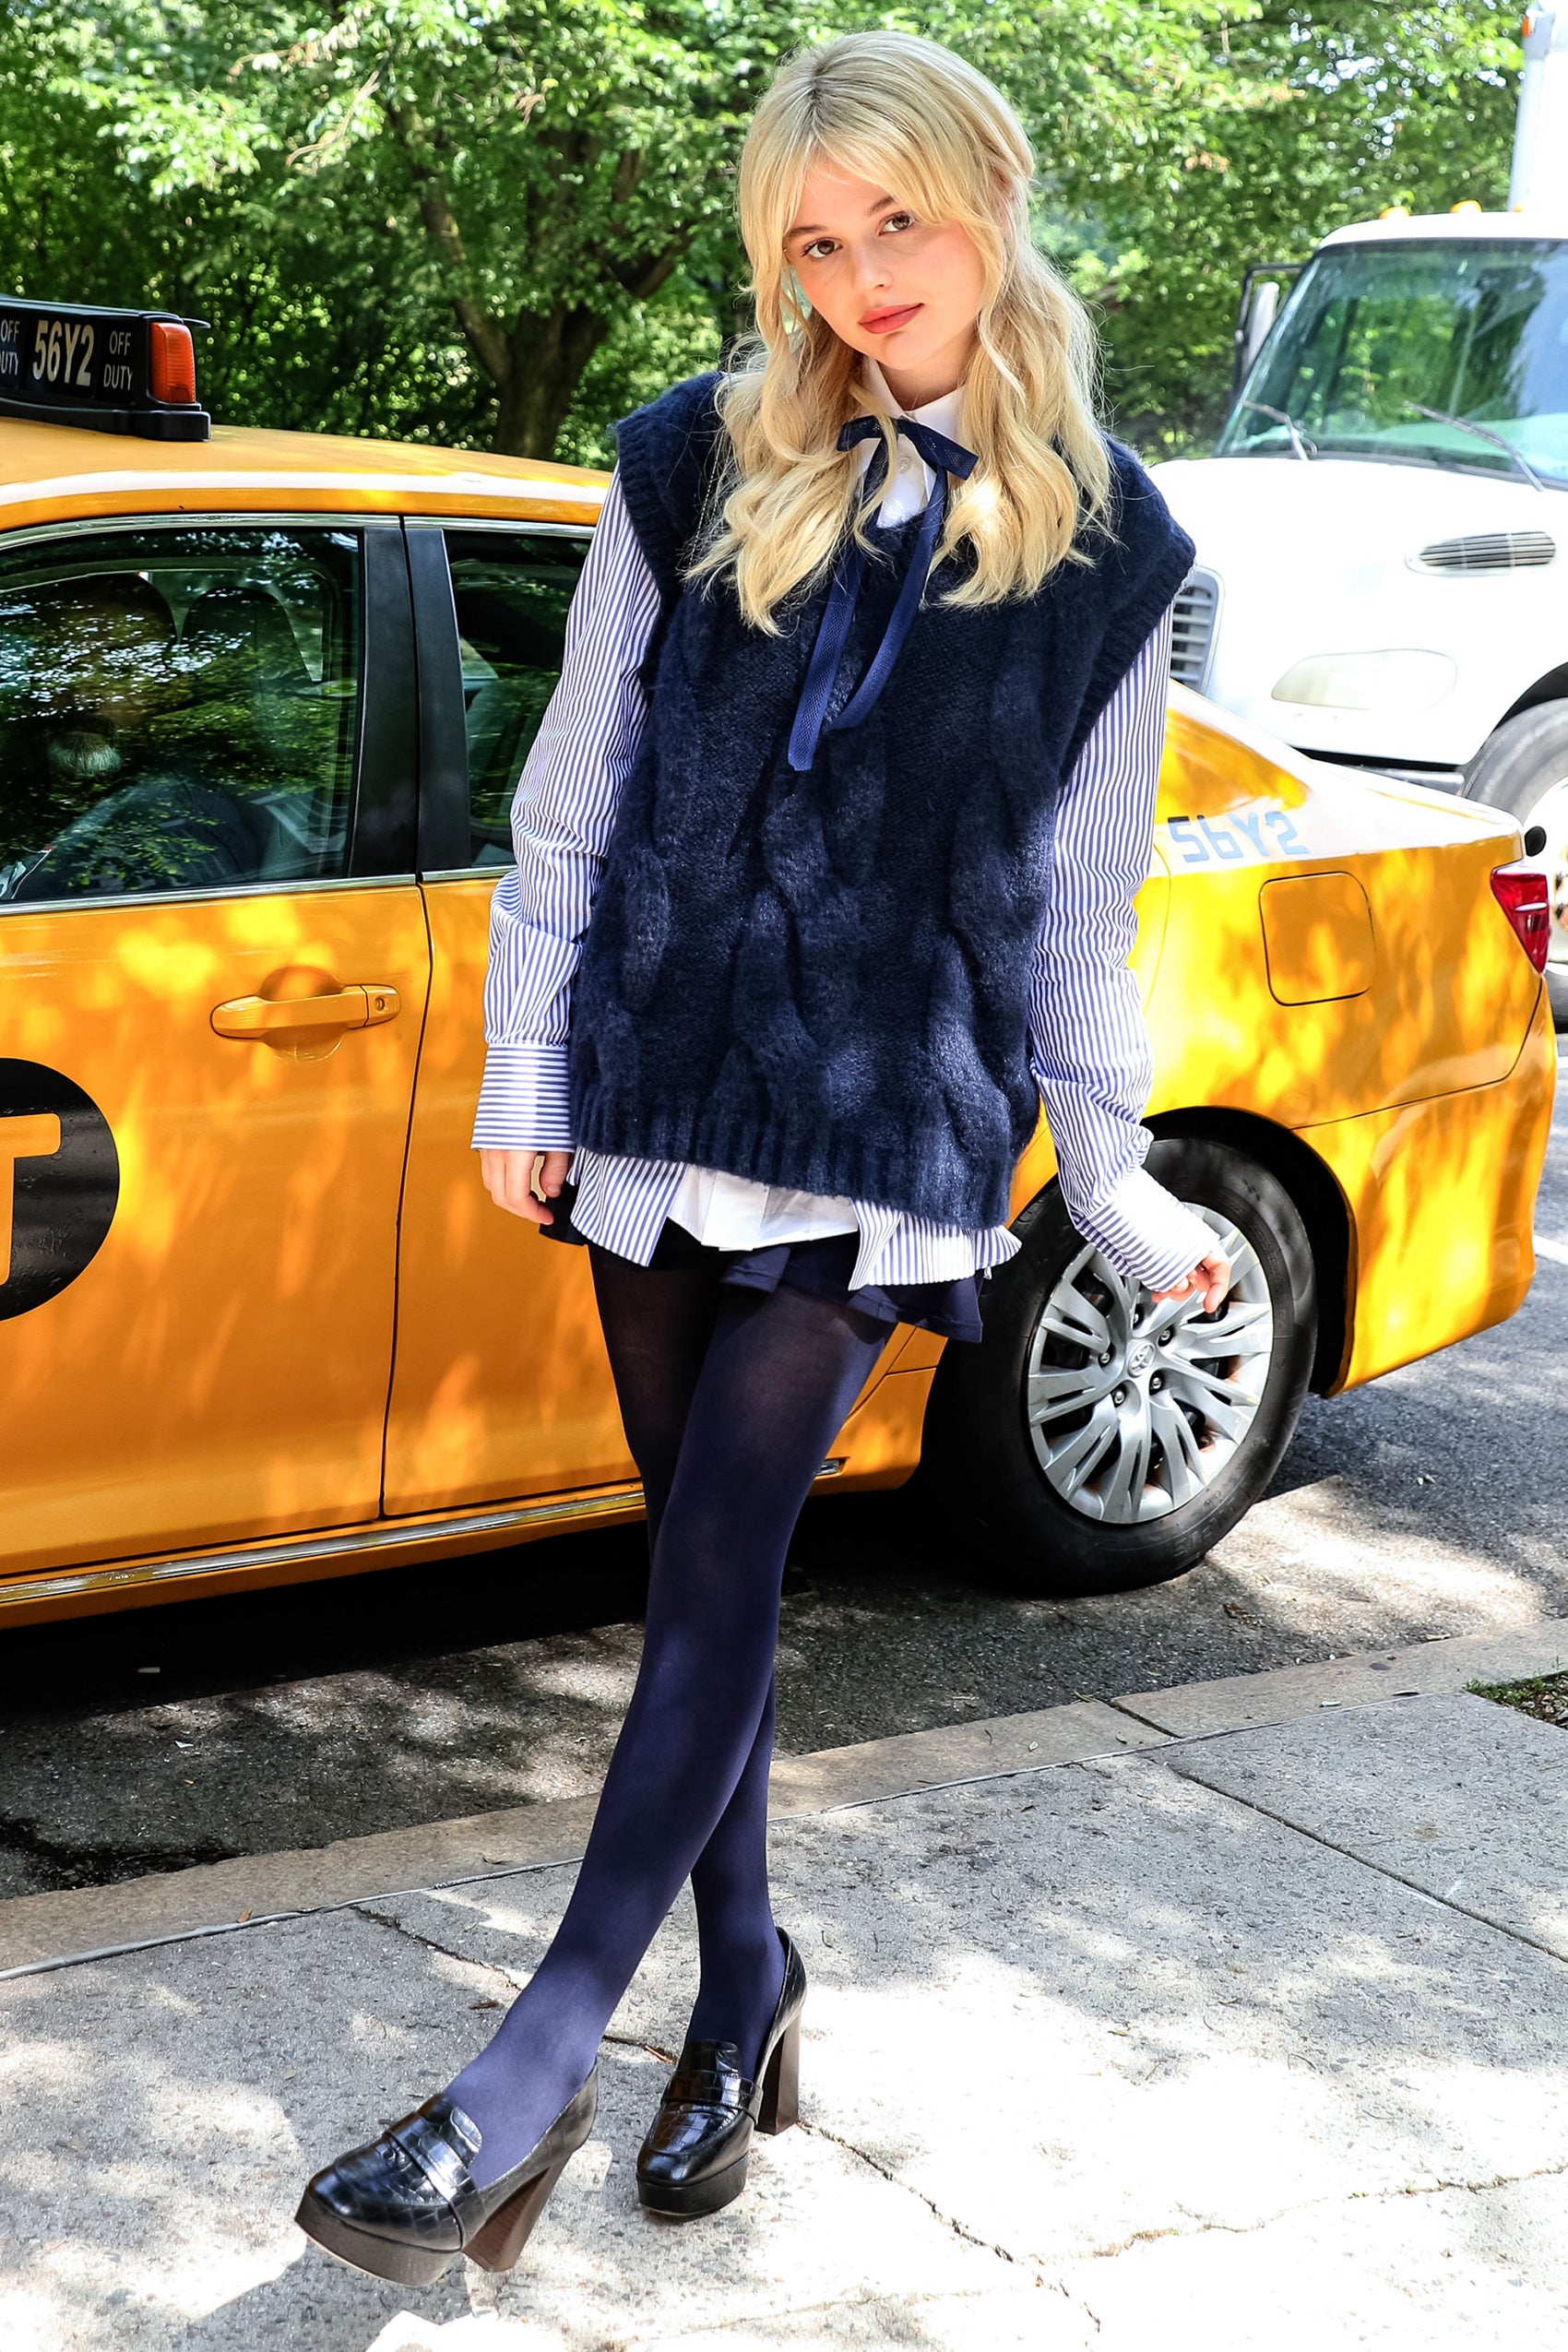 The Fashion In Gossip Girl Is Next-Level. Here Are The Looks You Can Still Buy